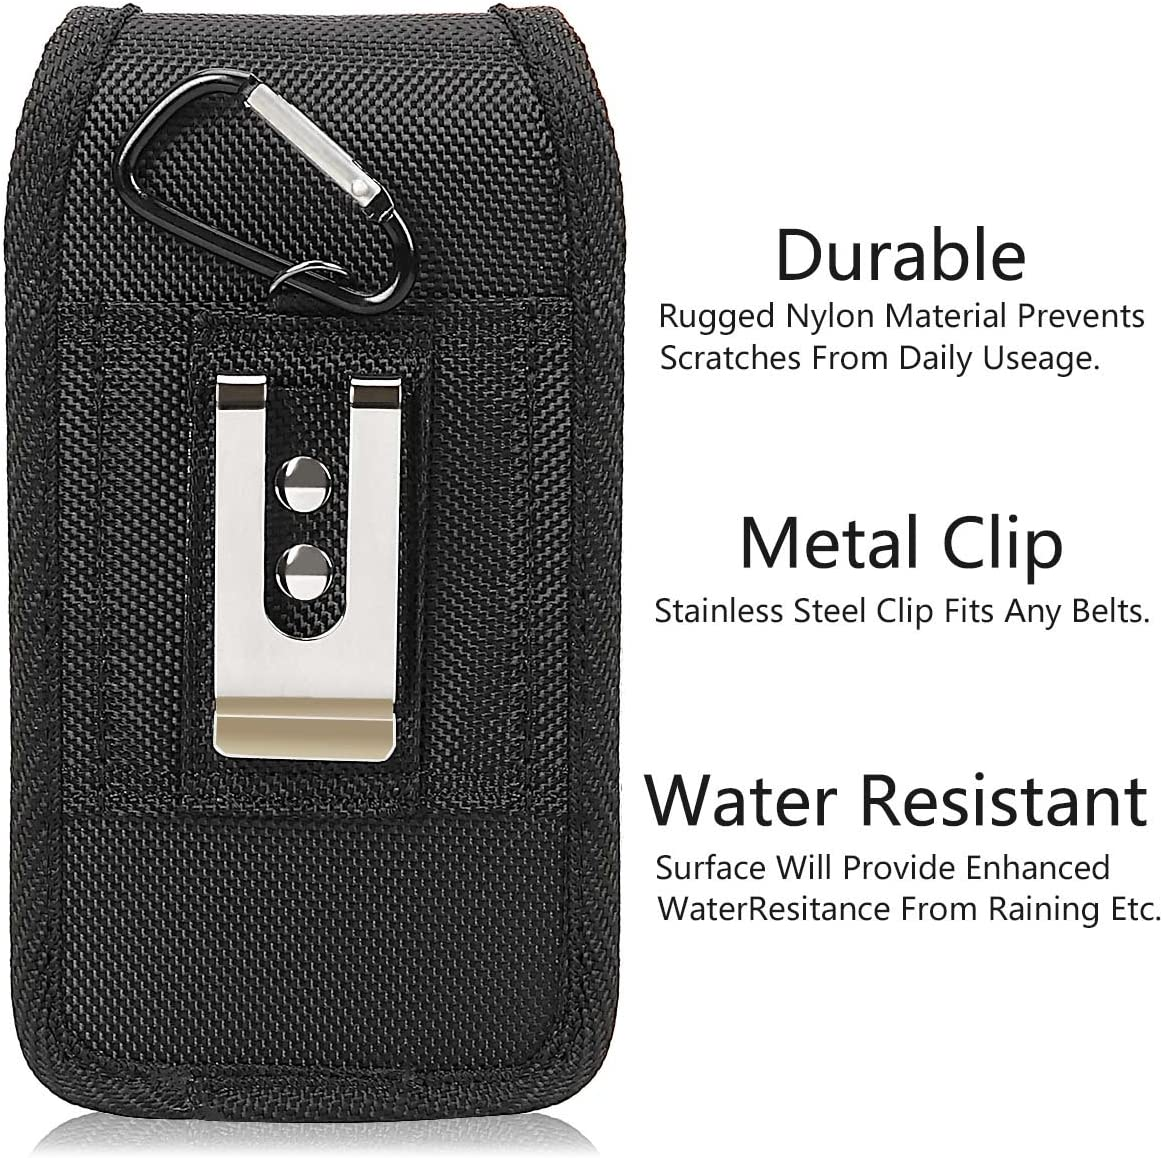 IronSeals 2 Pack AQ Durable Waterproof 1000D Nylon Pouch Waist Bag Outdoor Hook /& Loop Closure Pocket for Smartphone with D-Ring and Pen